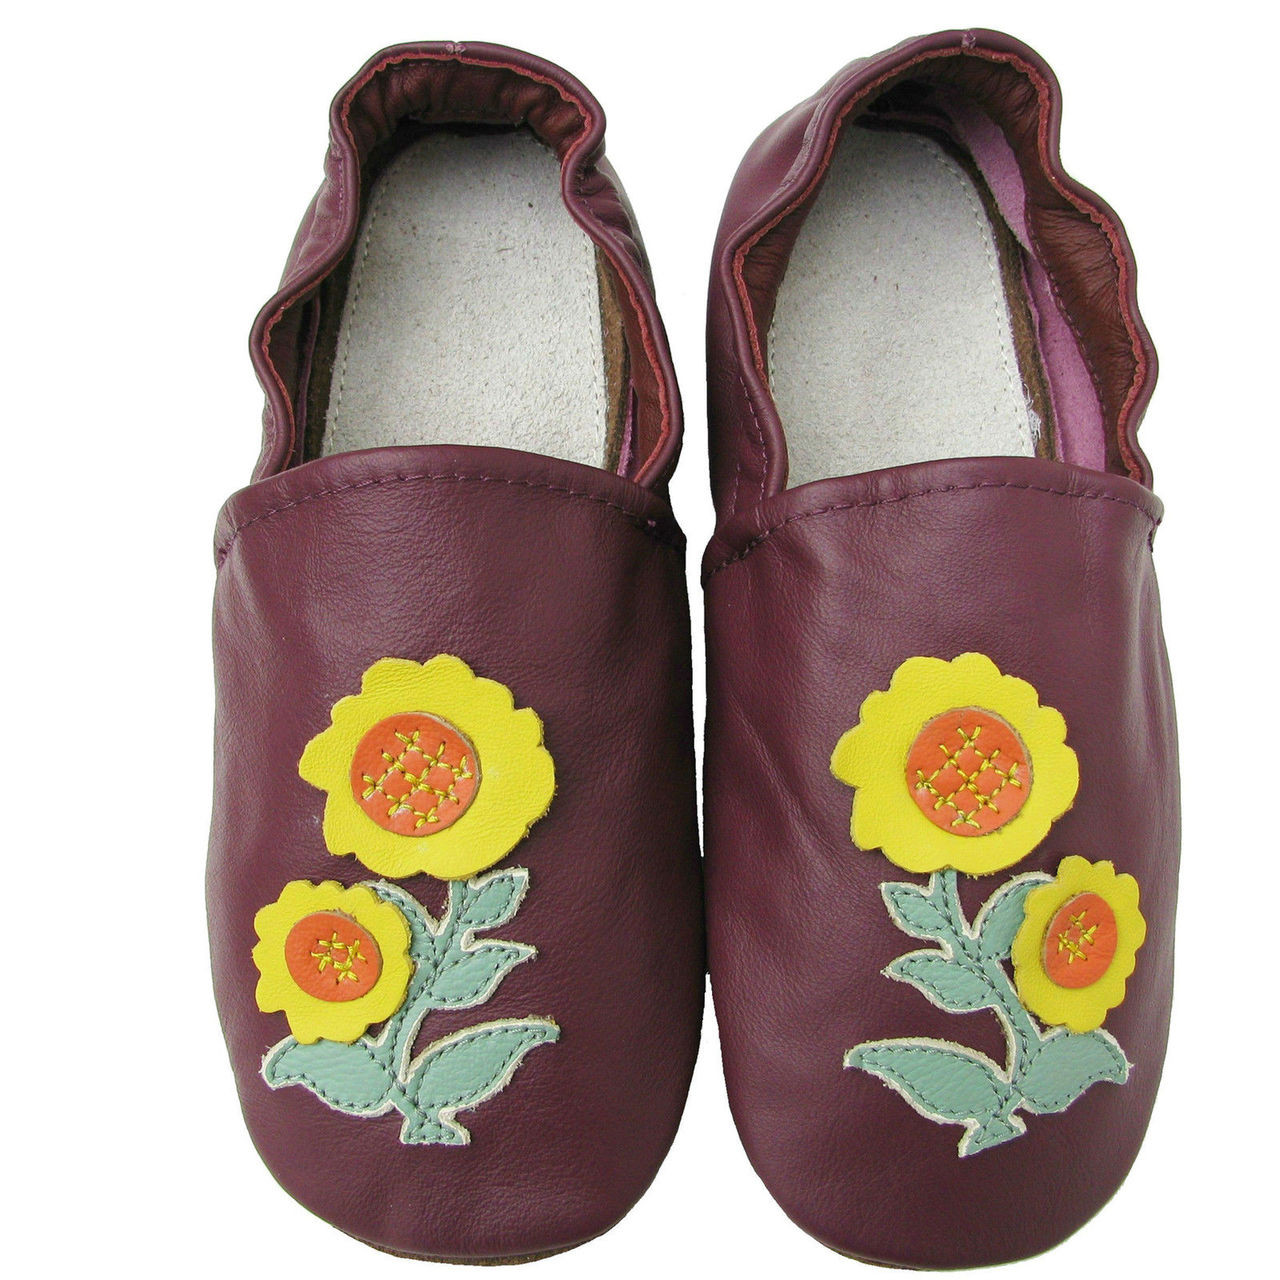 soft sole leather adult shoes